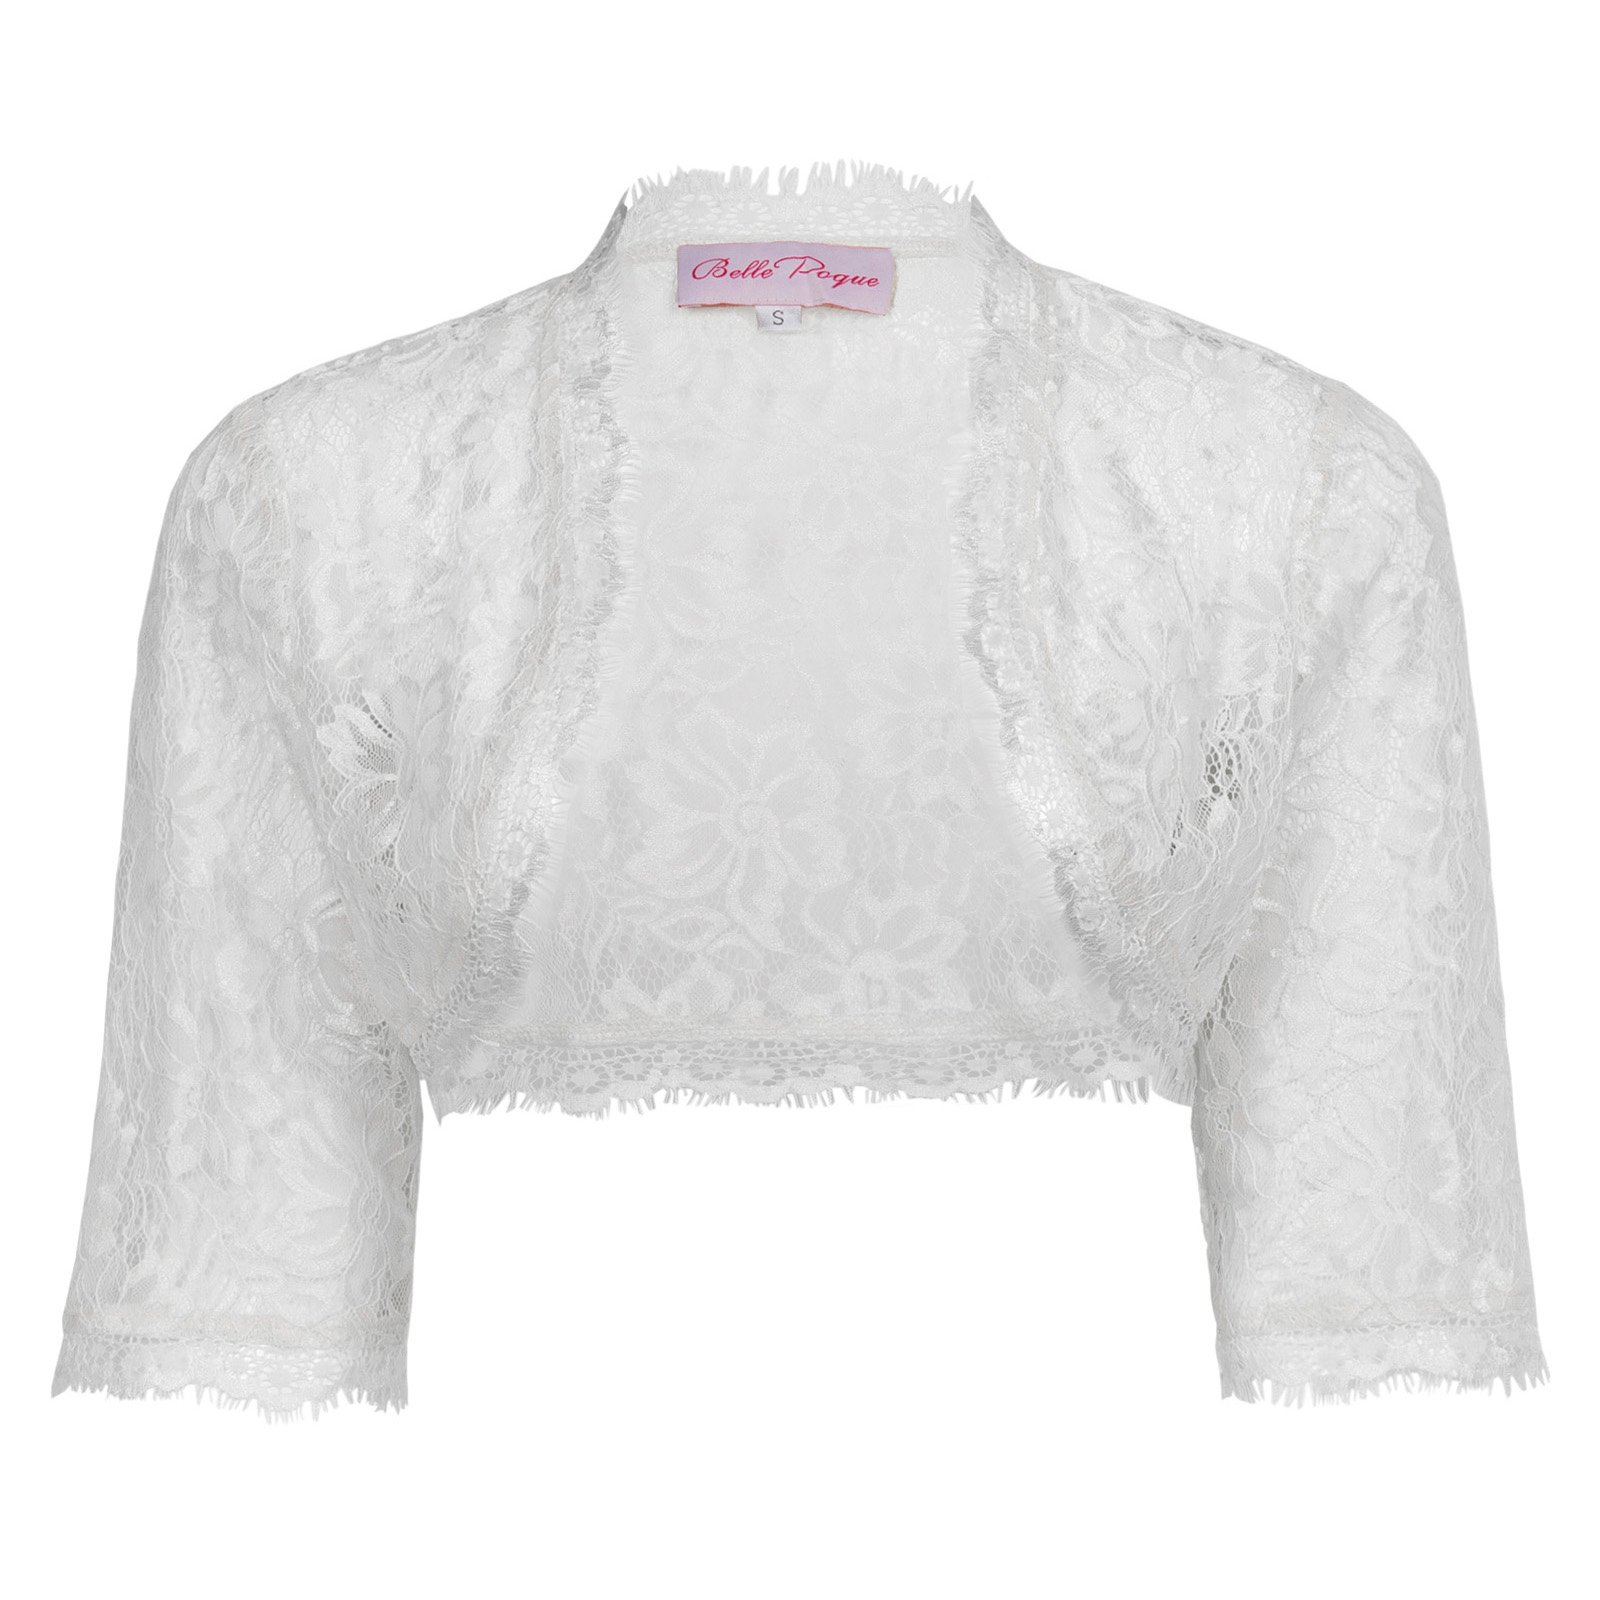 JS Fashion Vintage Dress Open Front Lightweight 3/4 Sleeve Bolero Shrug (2XL, White)